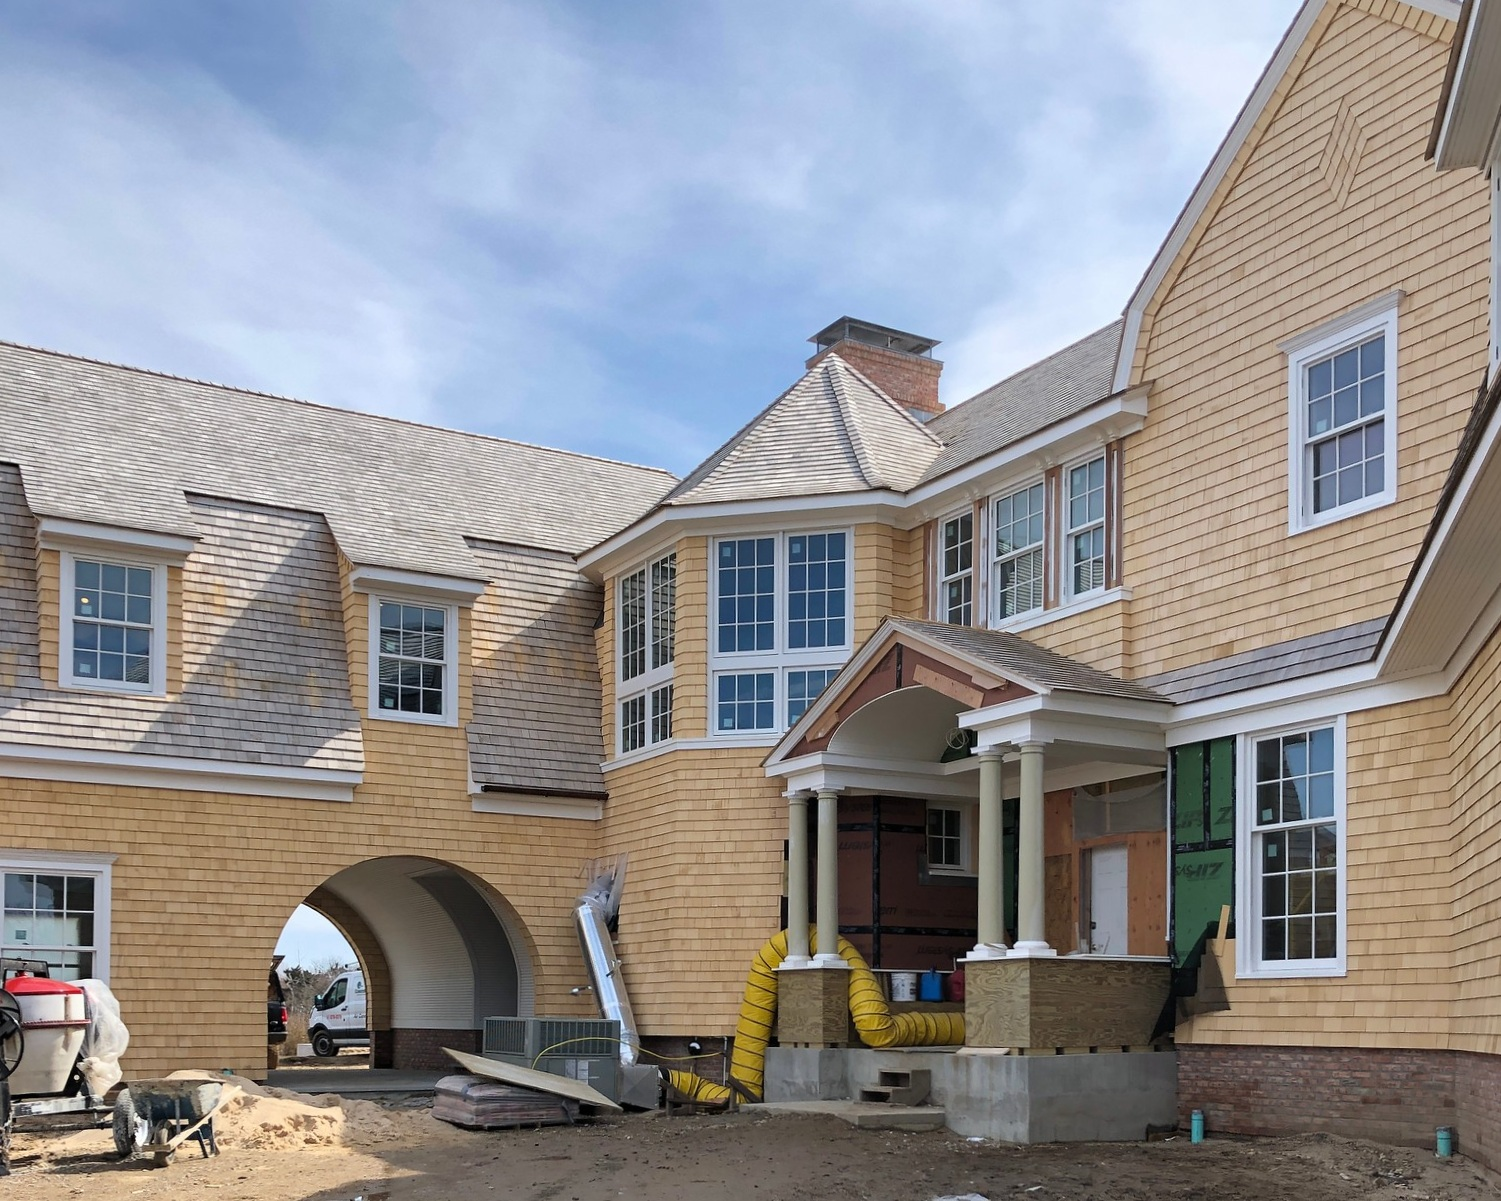 1. Major progress is happening for Project Quogue. - See the Quogue Blogue